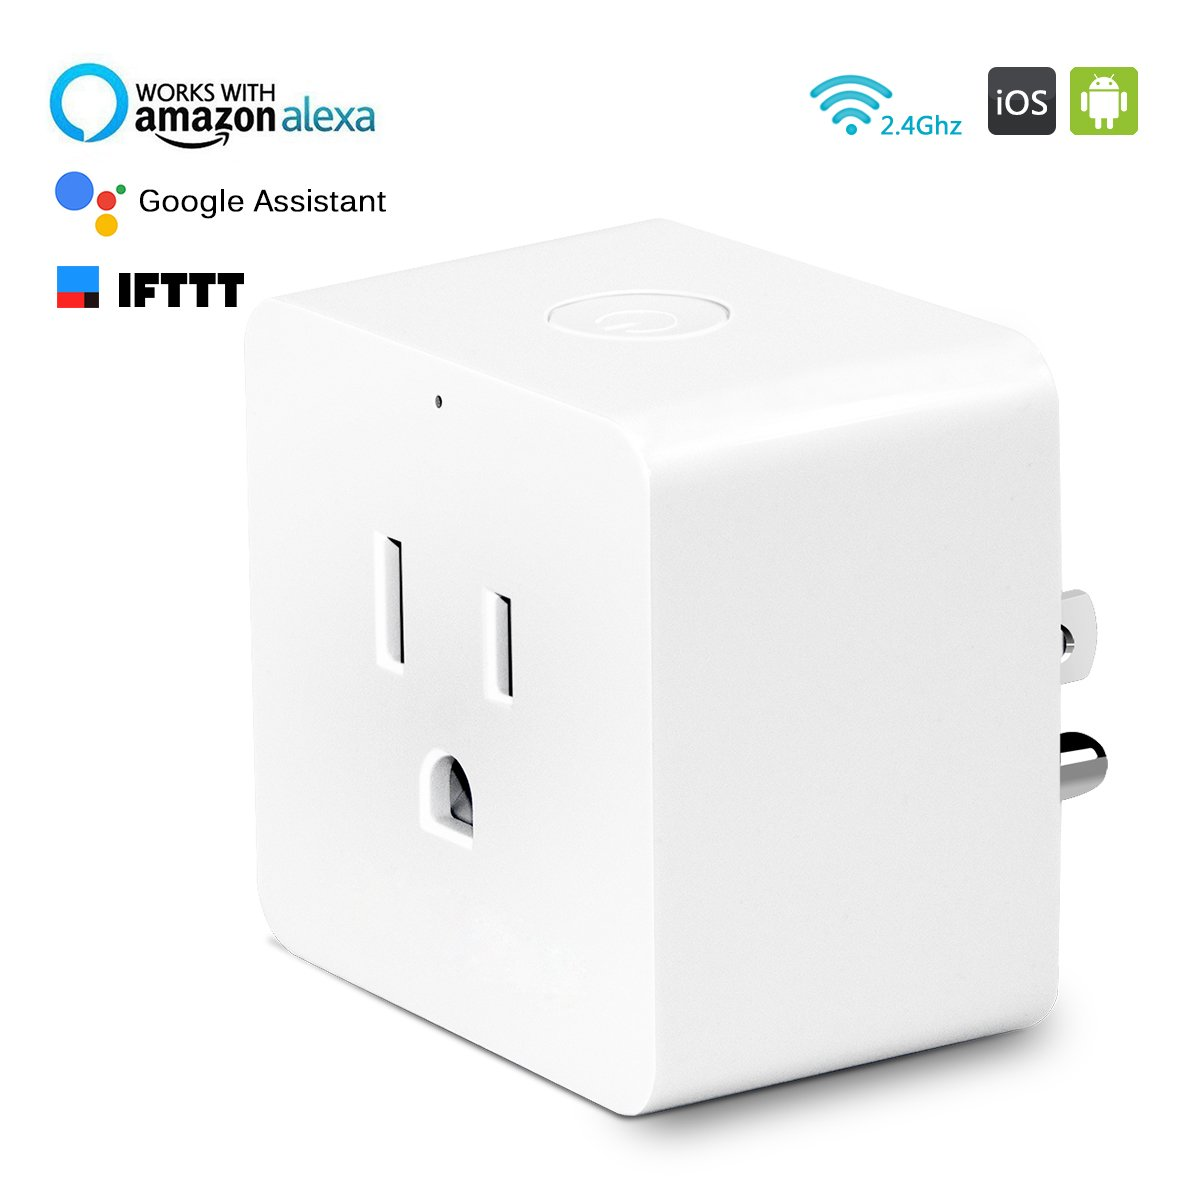 Smart Plug Mini Outlet Switch No Hub Required Competible with Alexa Google Assistant, HLT Wifi Smart Plug Control from Anywhere